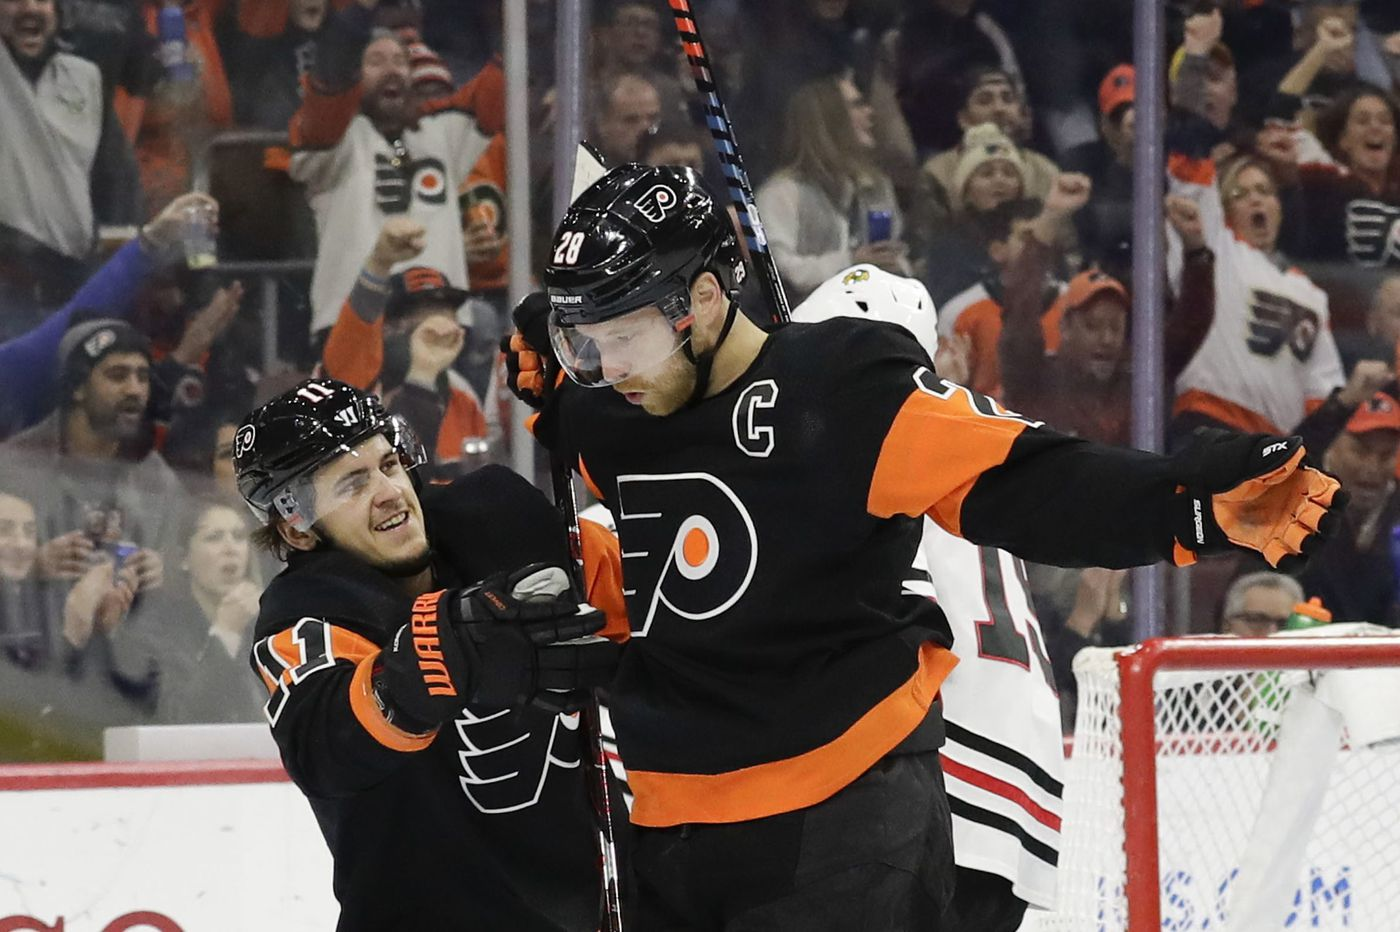 Flyers and Claude Giroux stay hot in win over Blackhawks